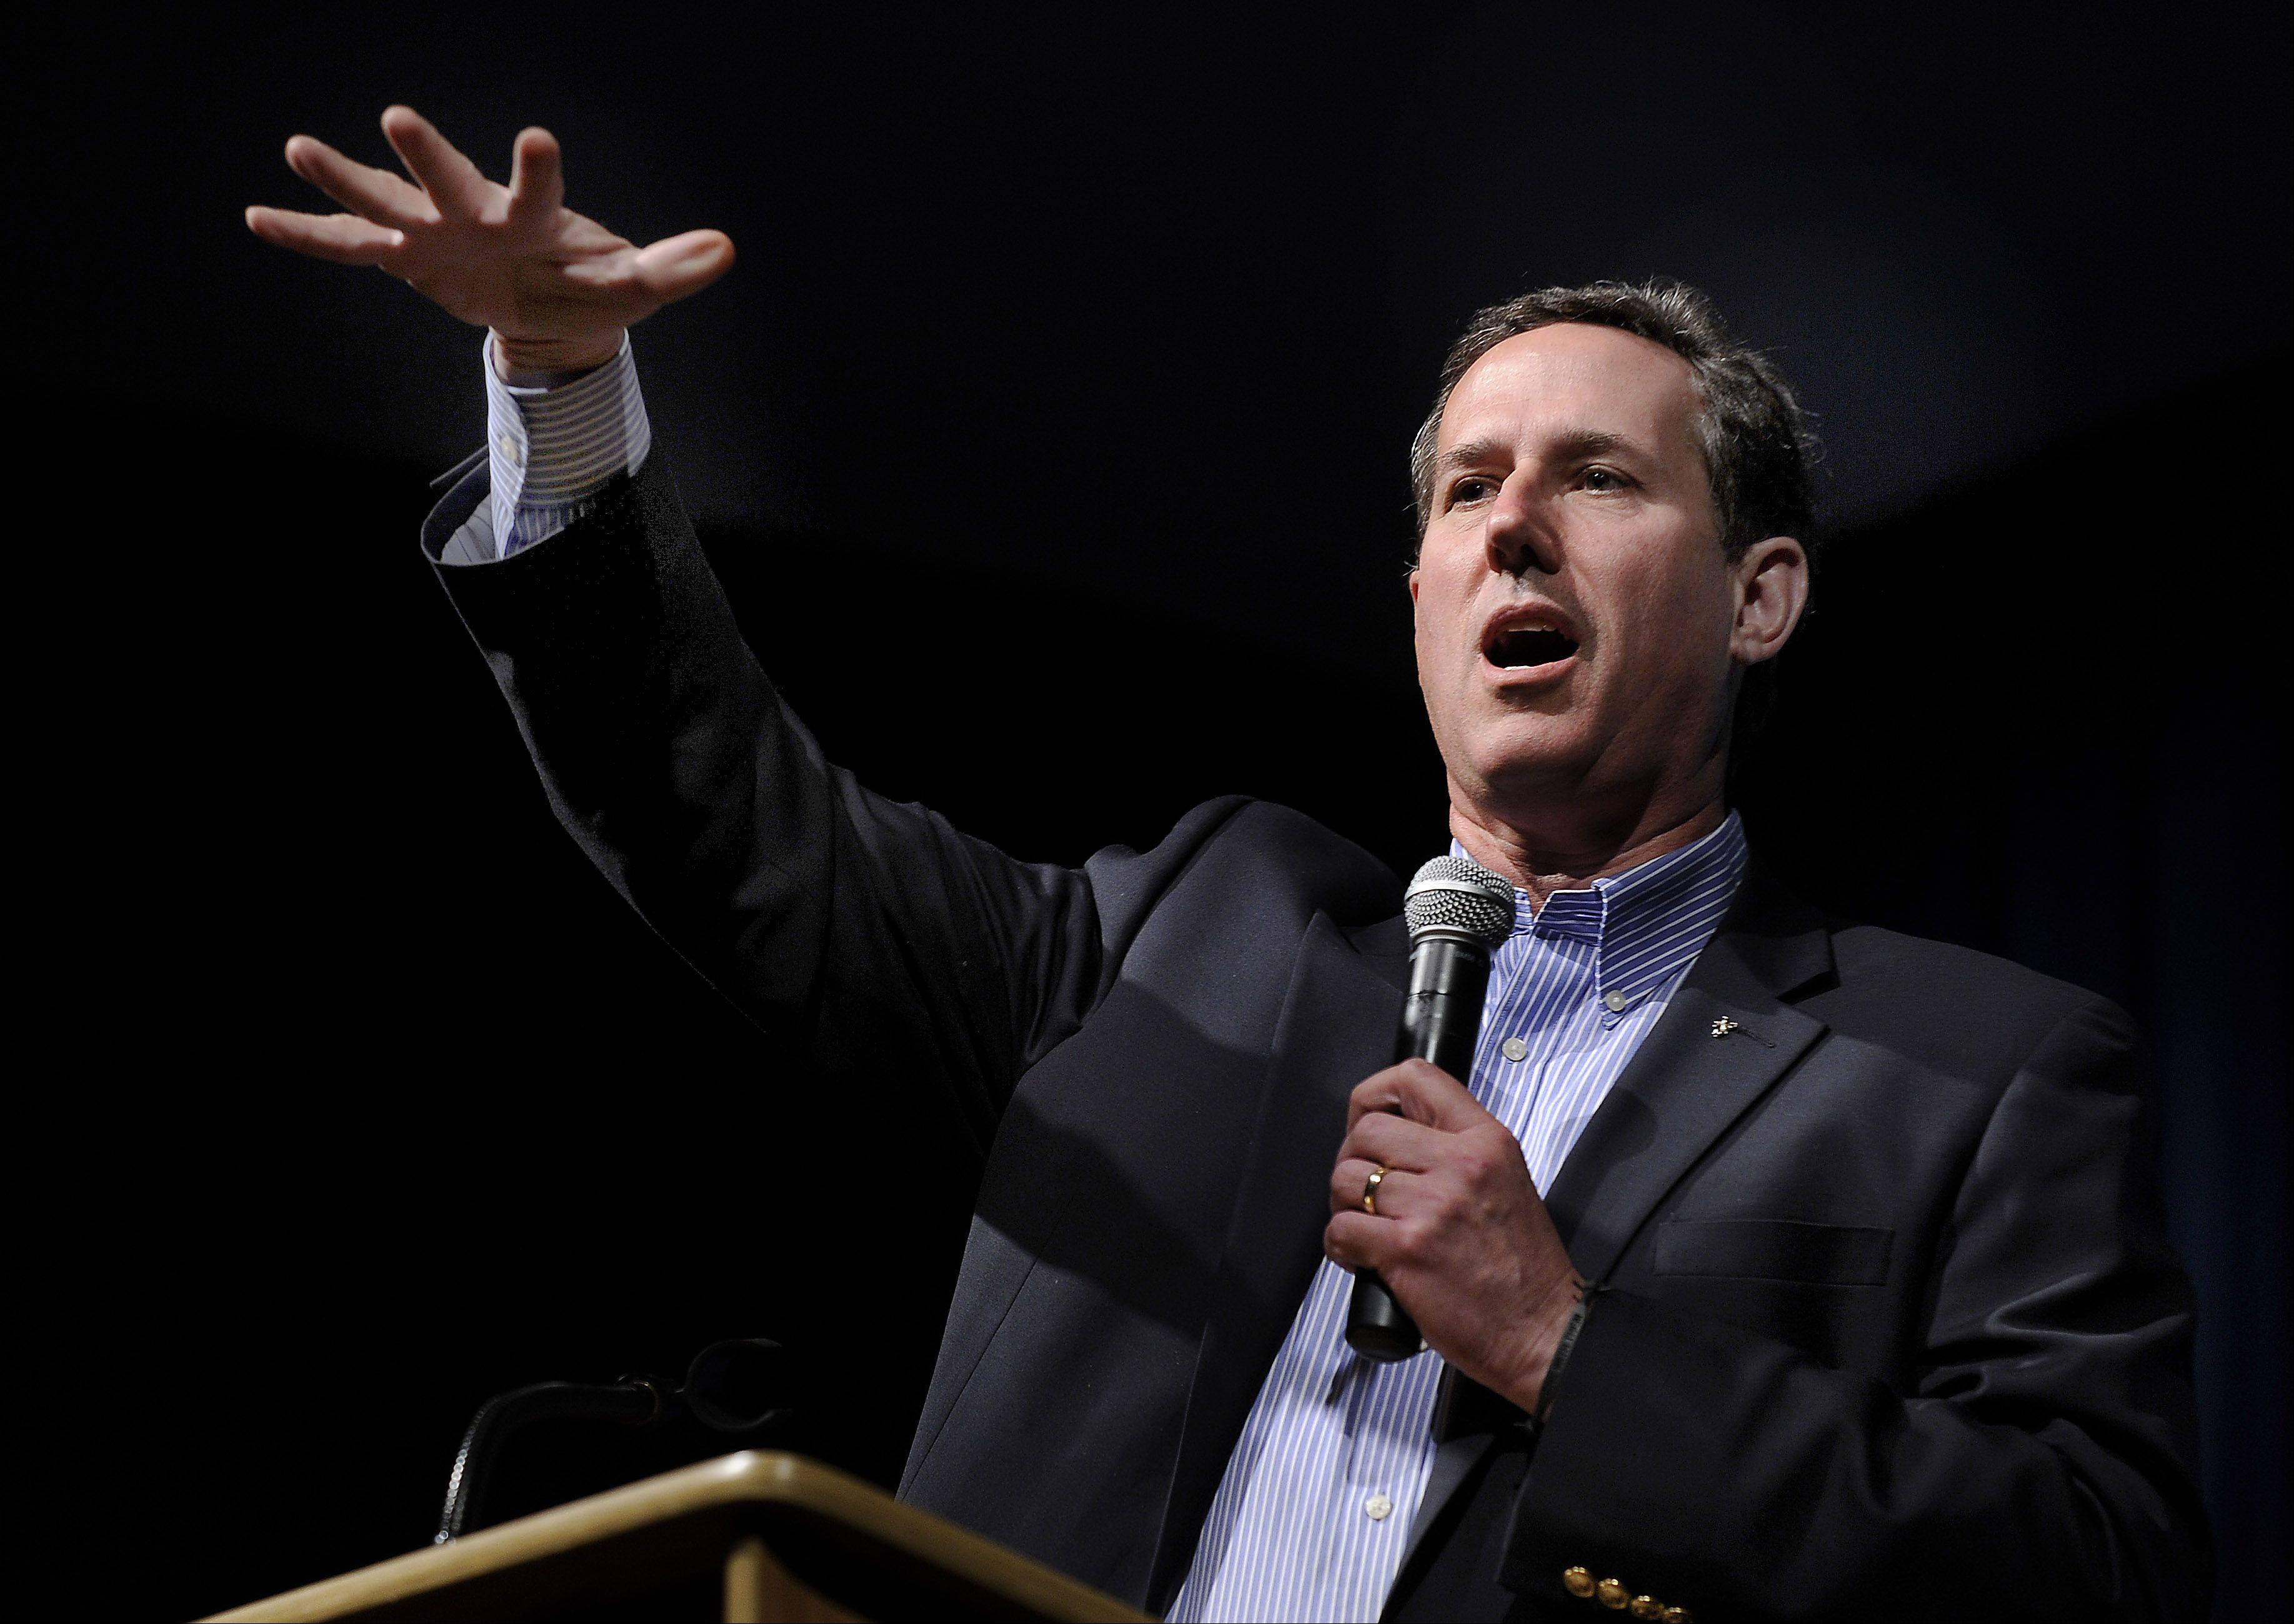 Rick Santorum visits the student body at John Hersey High School on Friday to talk about this years election and other hot topics.